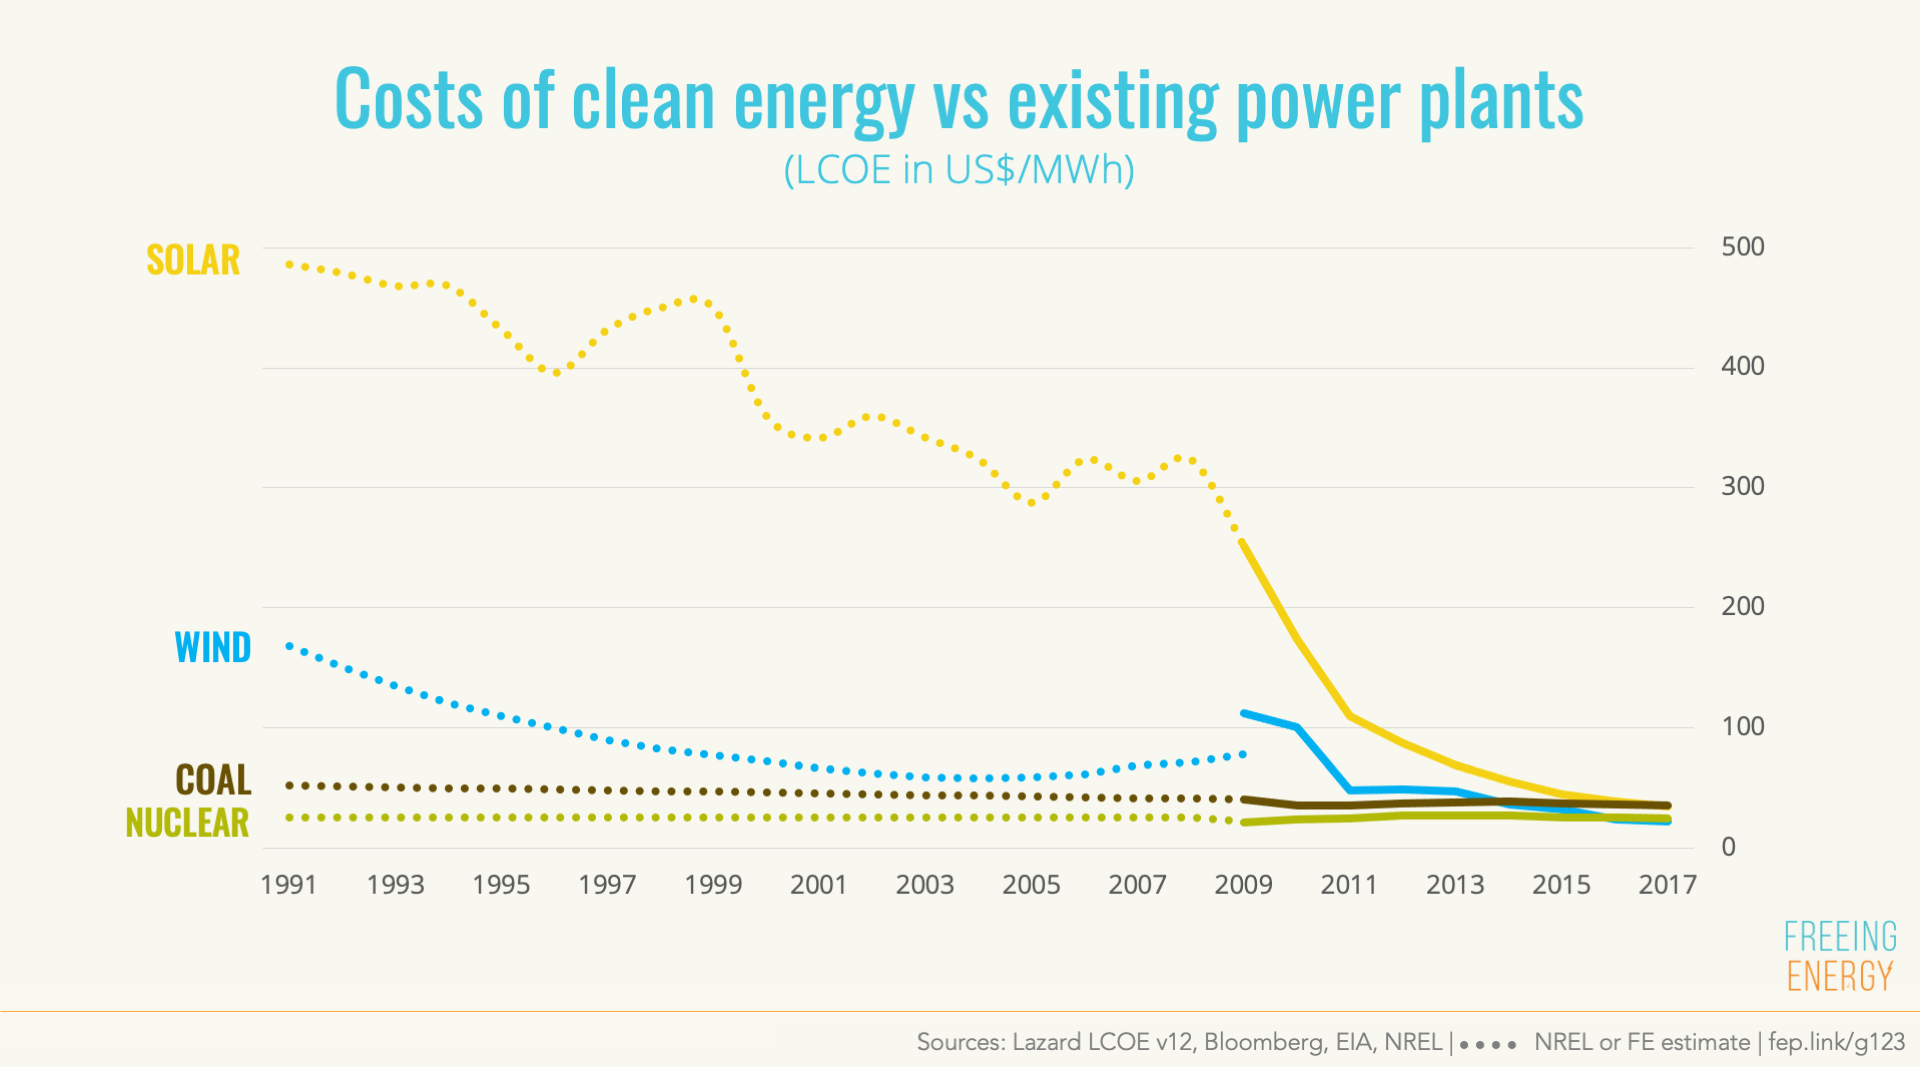 clean energy now costs less than pre-existing power plants